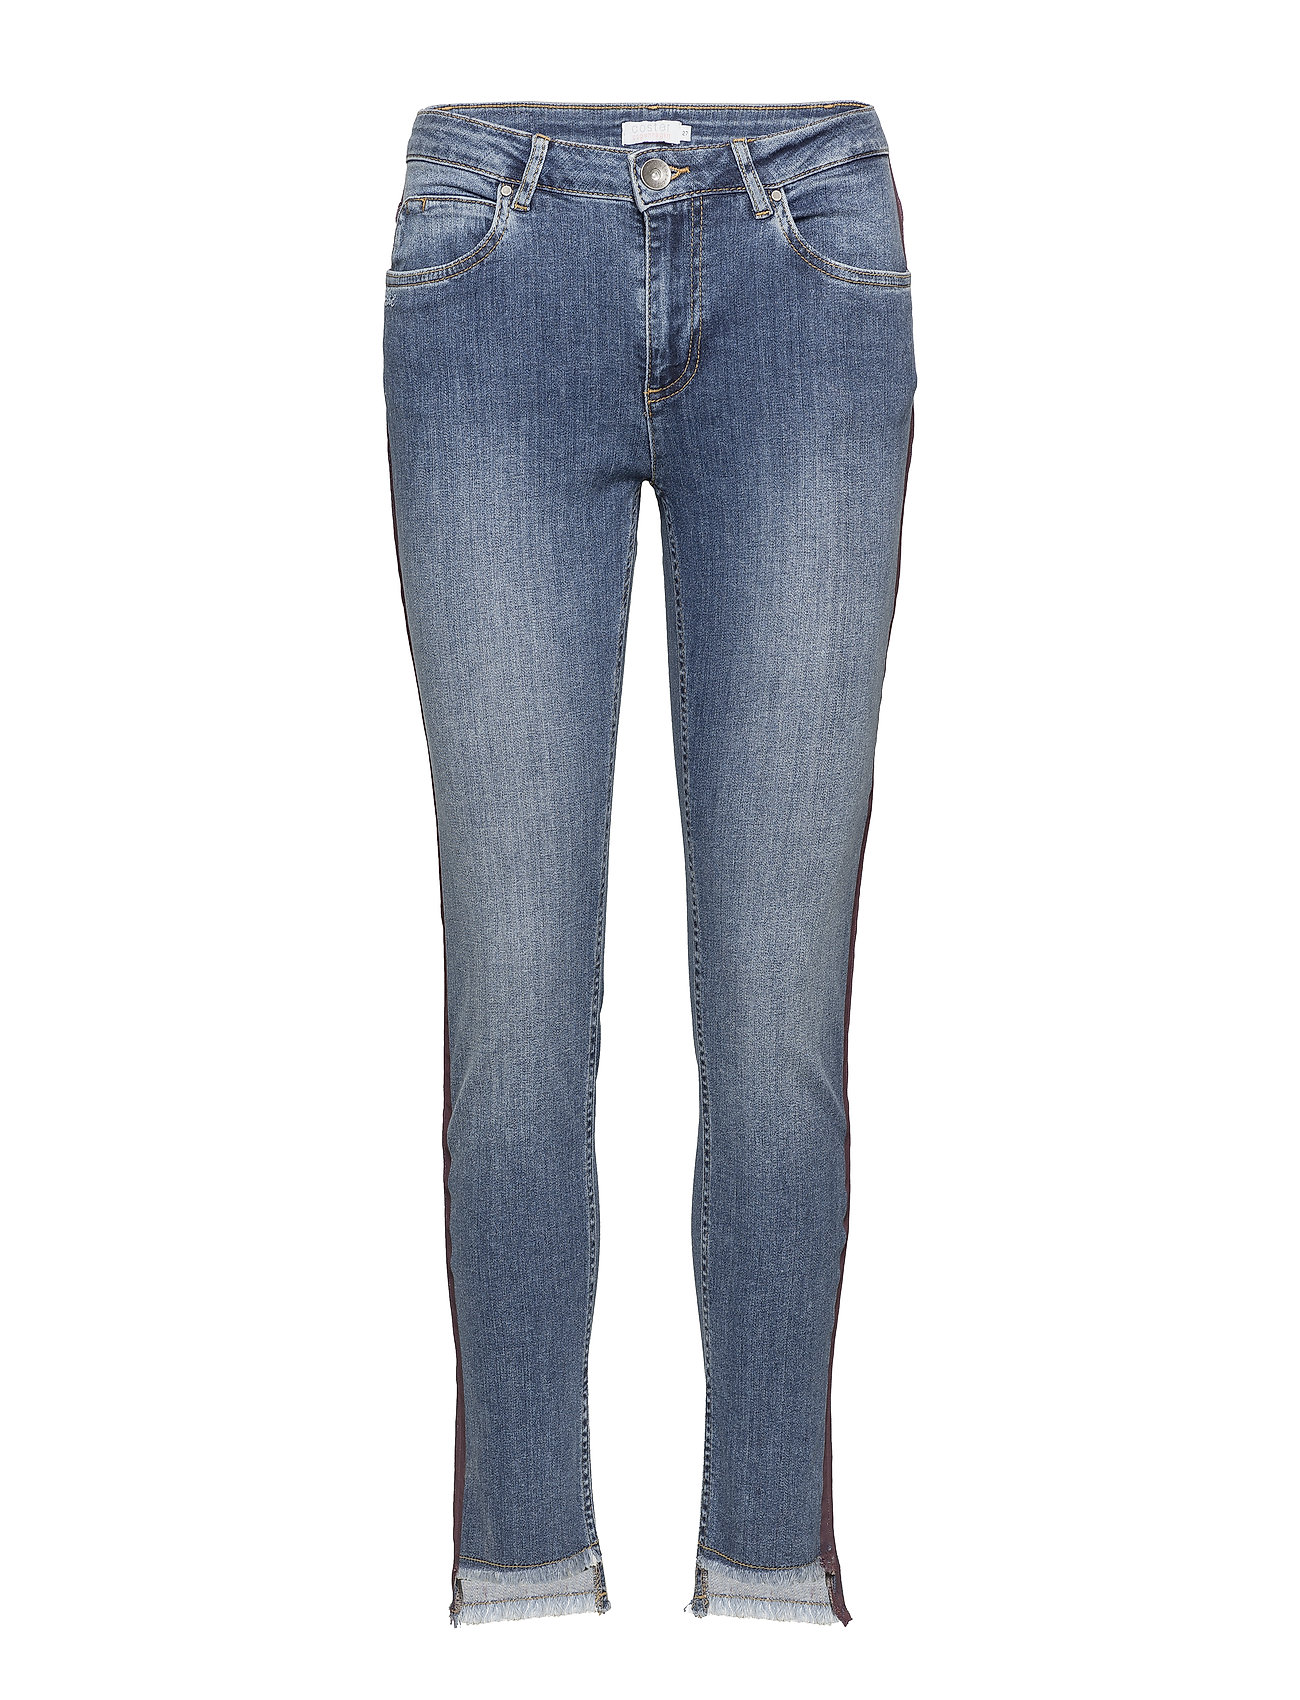 Coster Copenhagen Jeans - relaxed fit, ankle lenght w. little flare and stripe - CLASSIC INDIGO